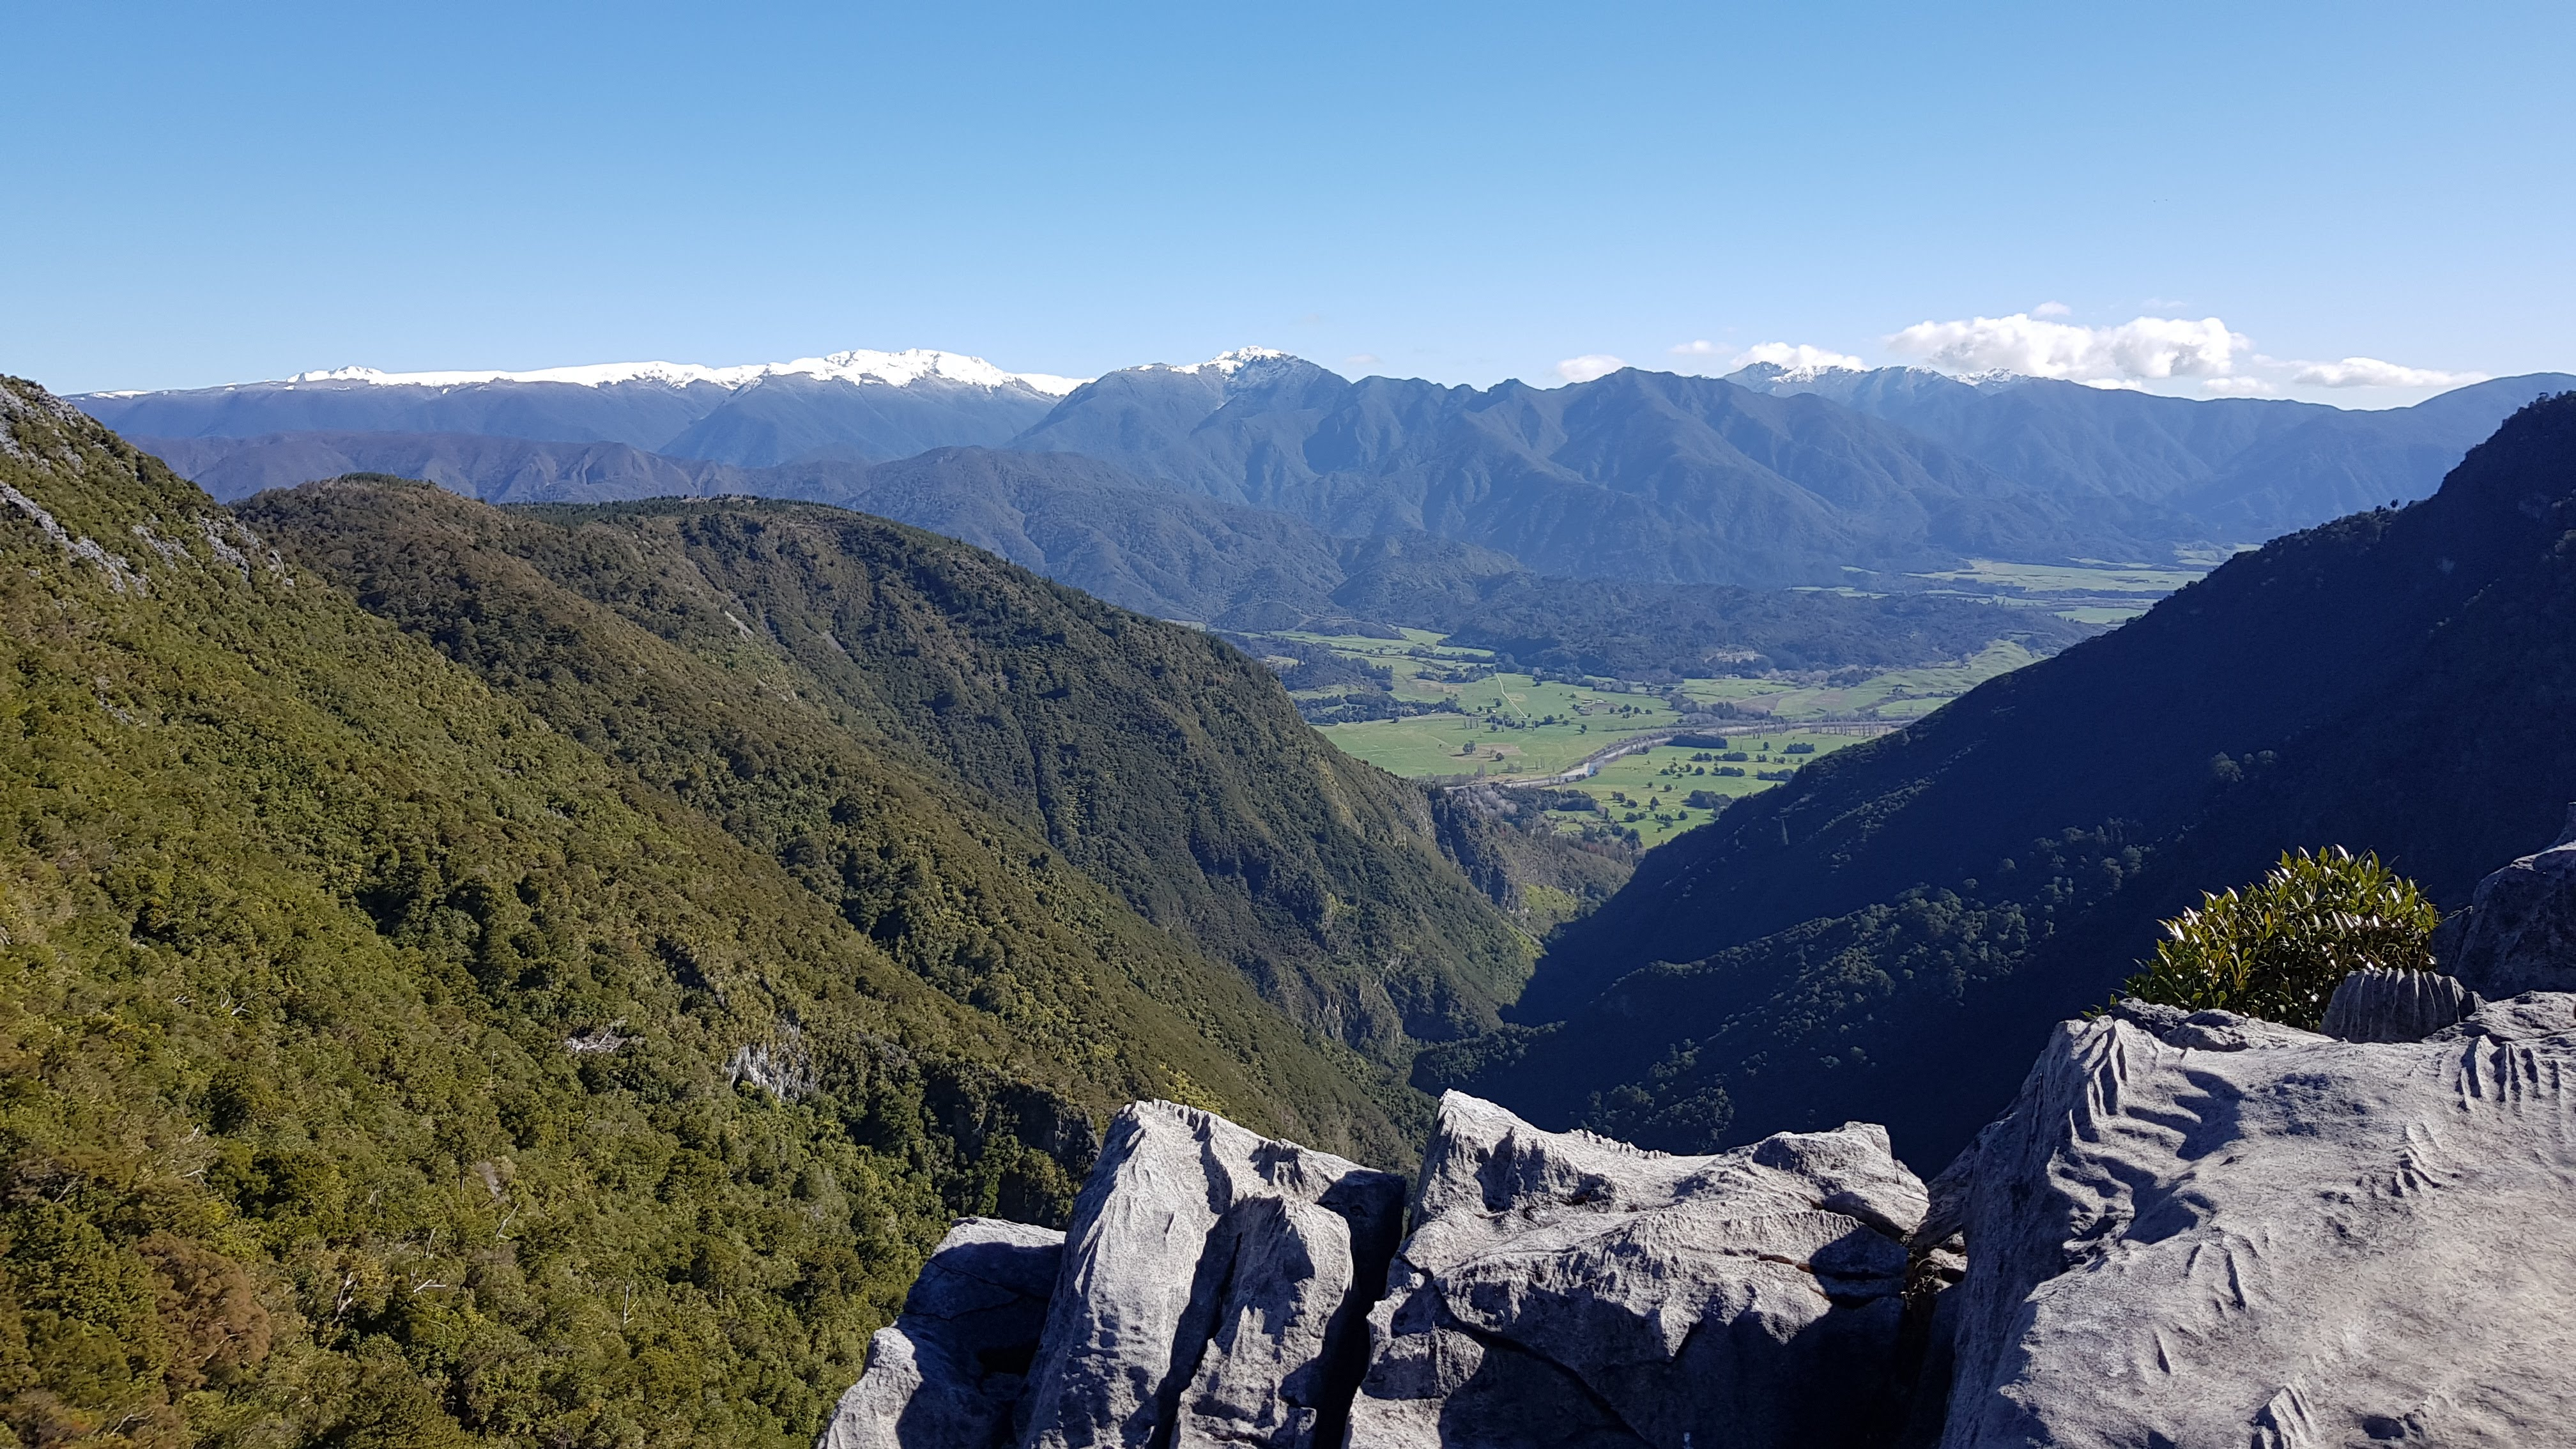 Gorge Creek and the mountains of Kahurangi National Park, from the lookout